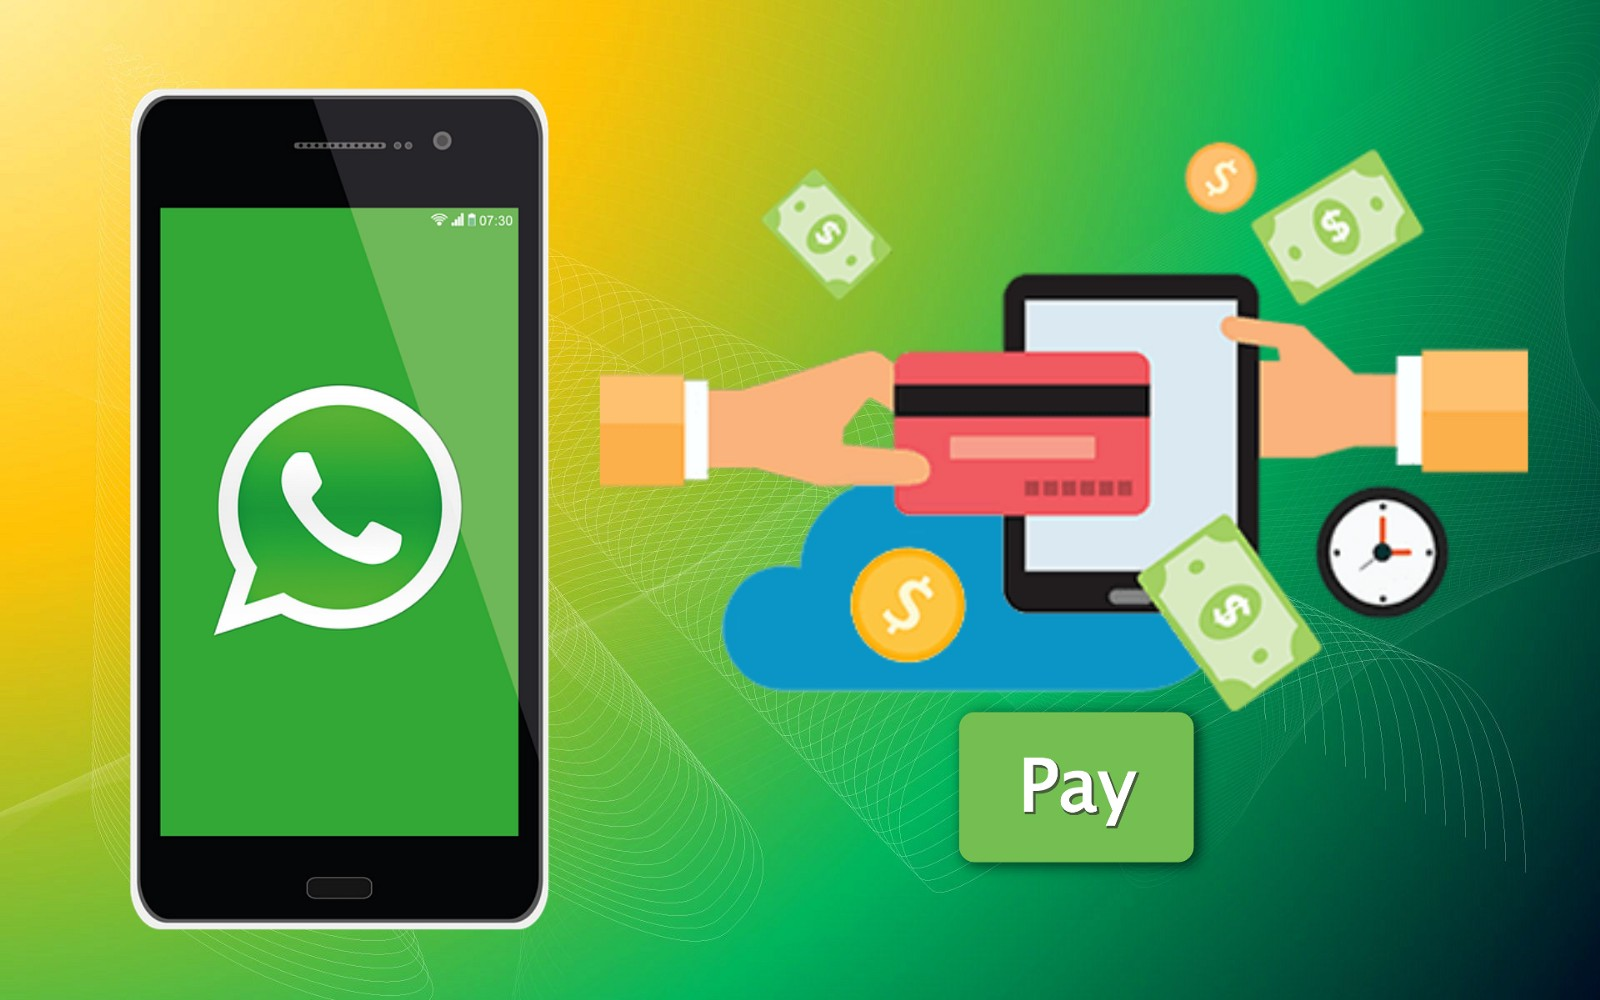 Welcome to WhatsApp Pay — a UX case study - UX Collective